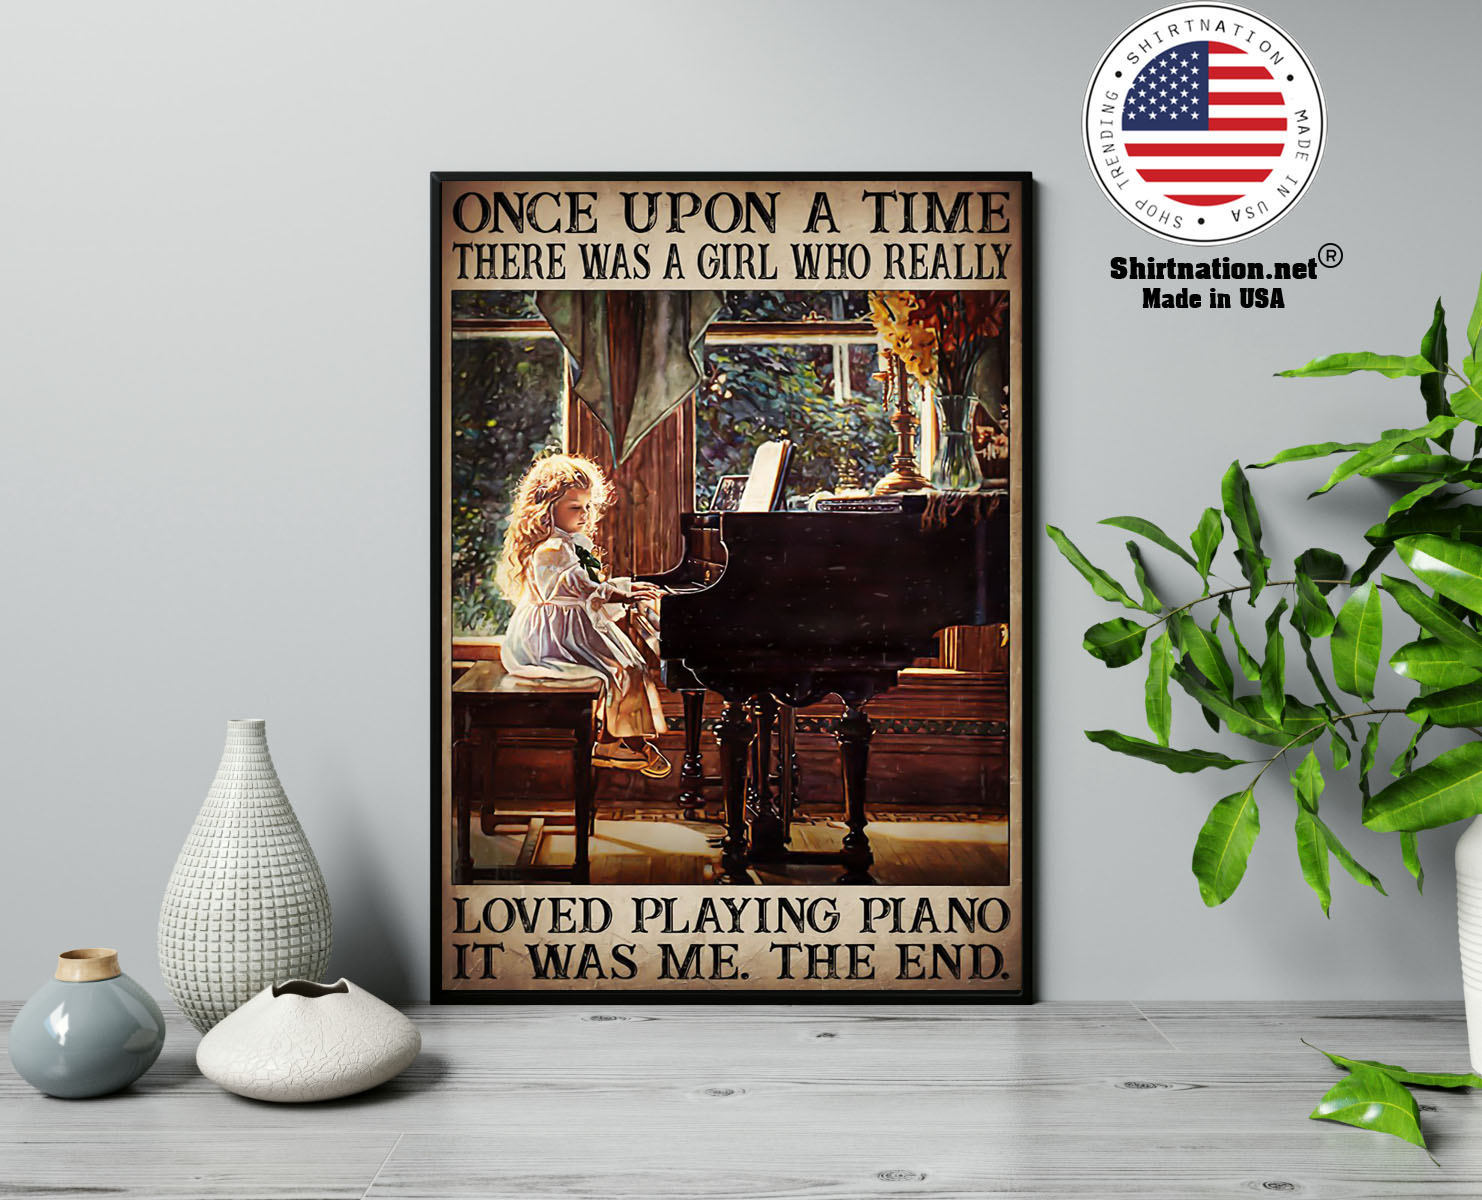 Once upon a time there was a girl who really loved playing piano poster 13